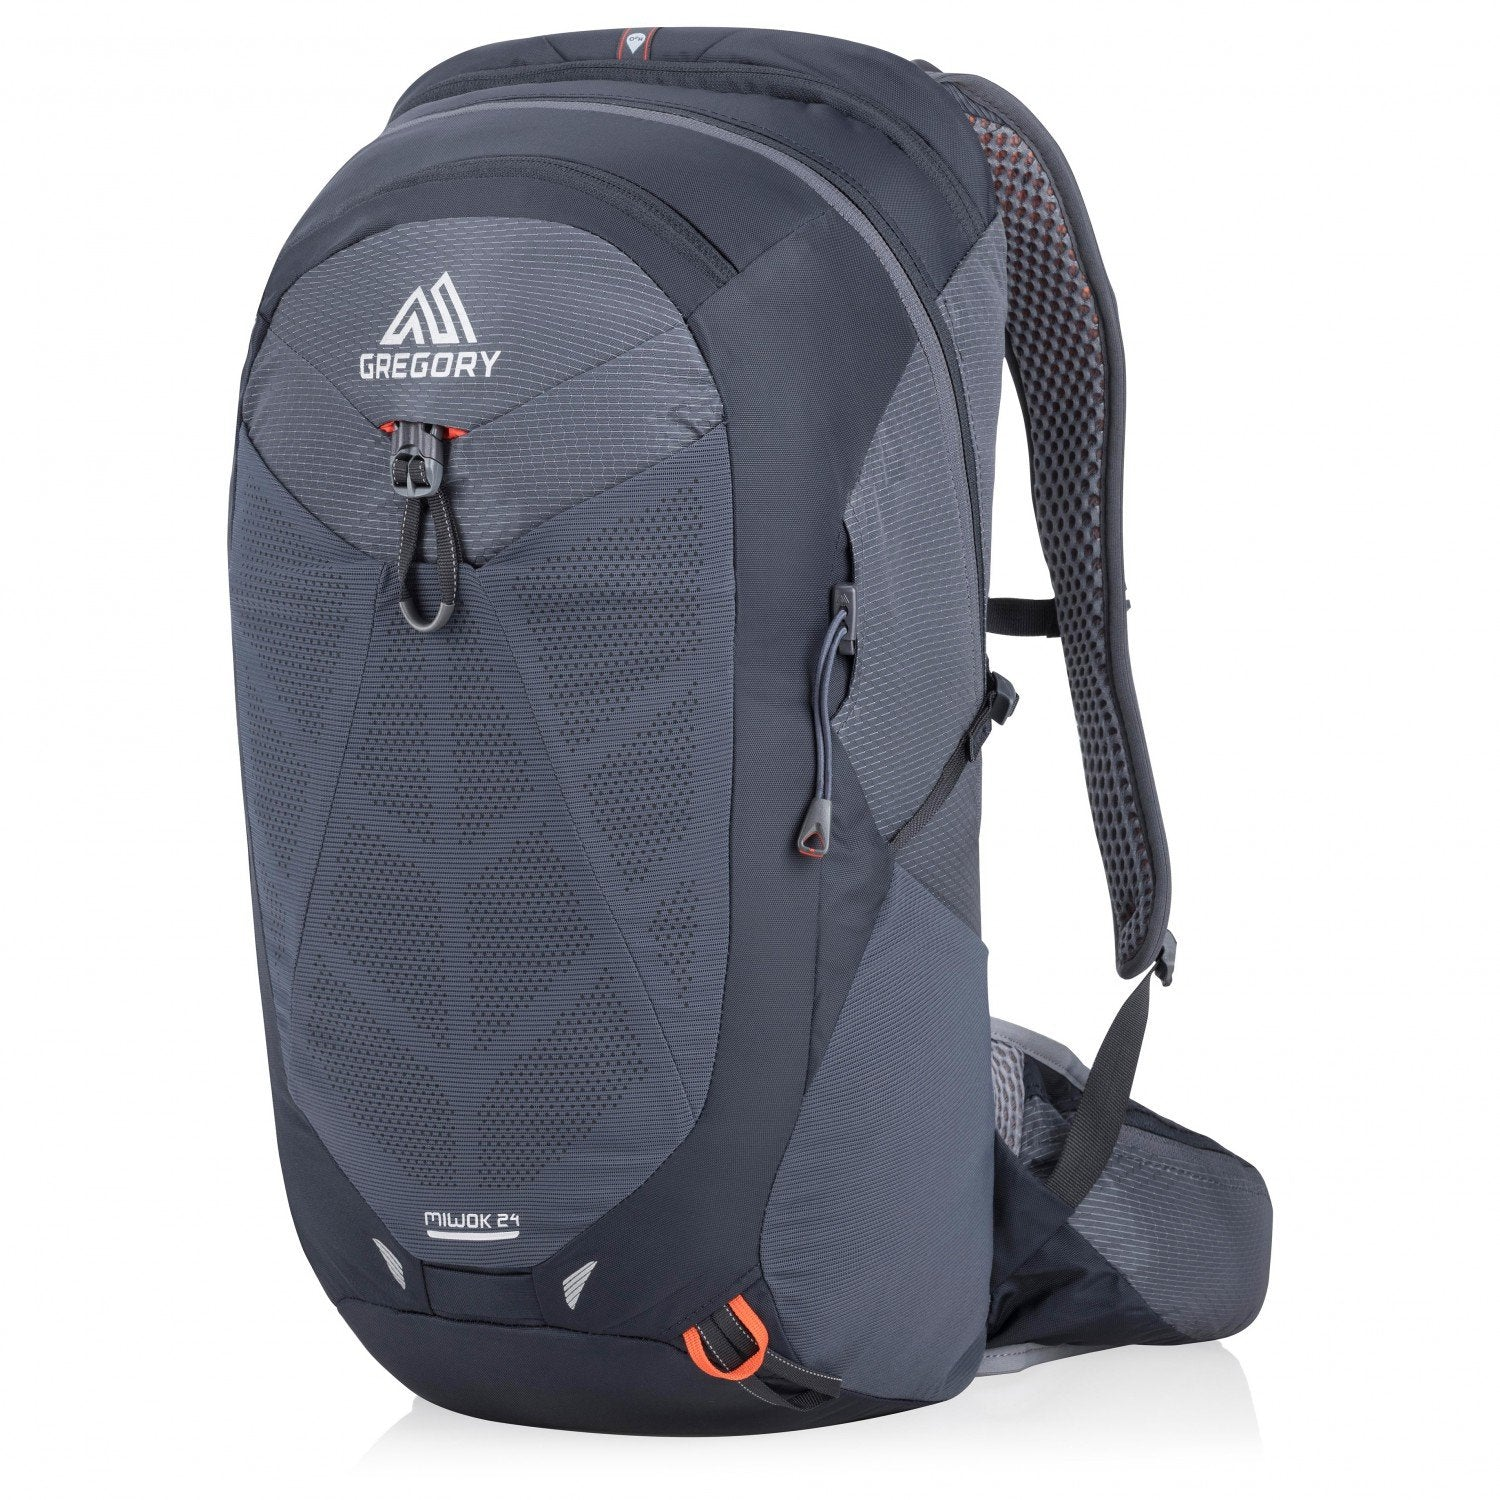 Gregory Miwok 24 backpack, front/side view in navy blue and grey colours